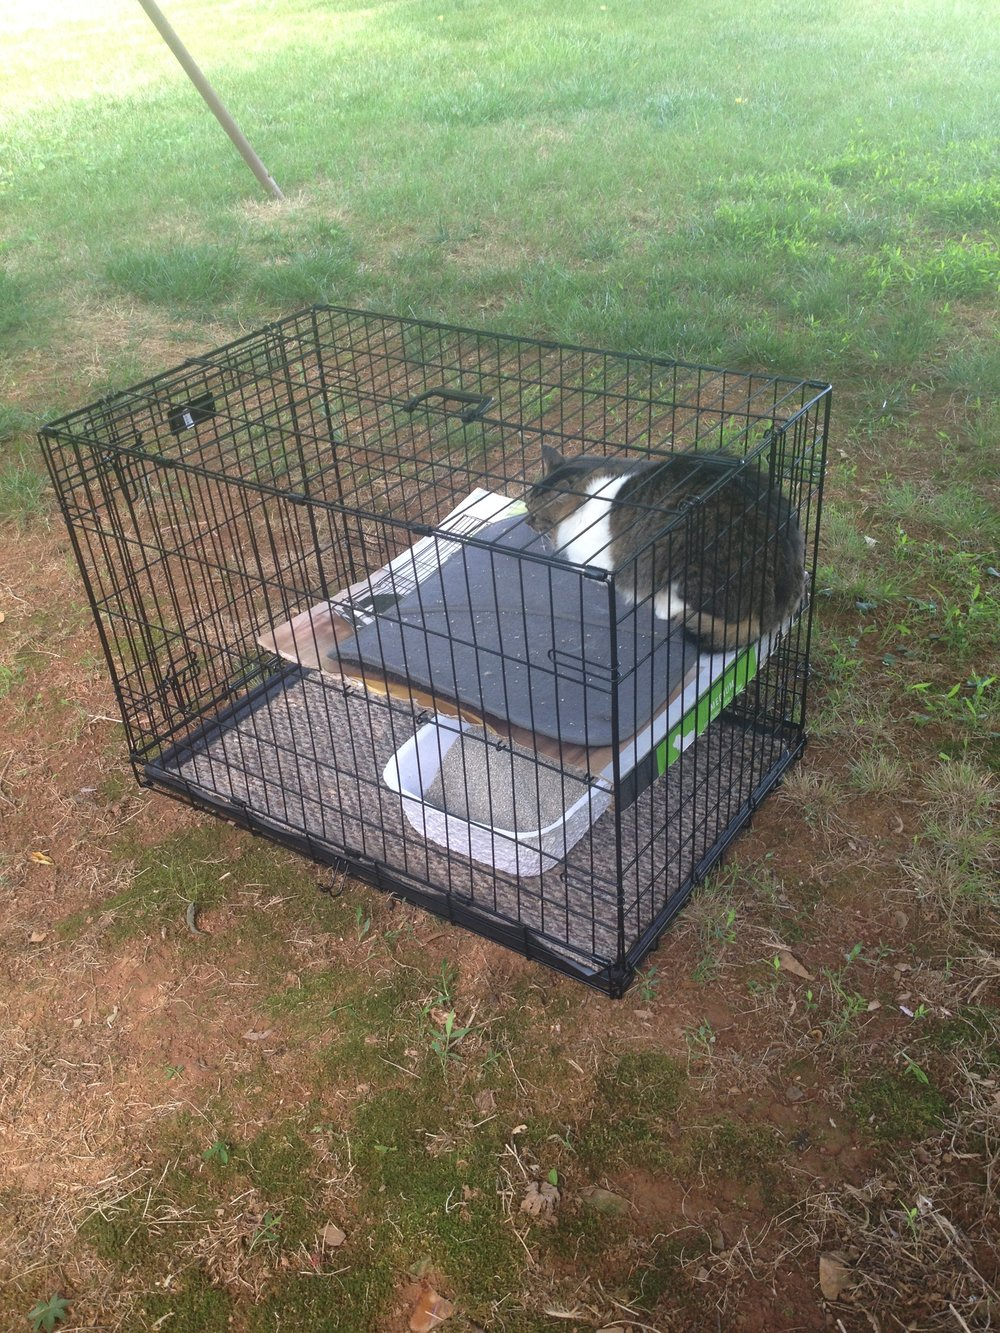 My husband engineered the shelf for Punkin using the metal crate divider that came with this 30-inch-long dog crate...it works horizontally as well as vertically, as you can see!  Then he put down cardboard and an old car floor mat for comfort.  We gave Punkin this disposable litter box to use.